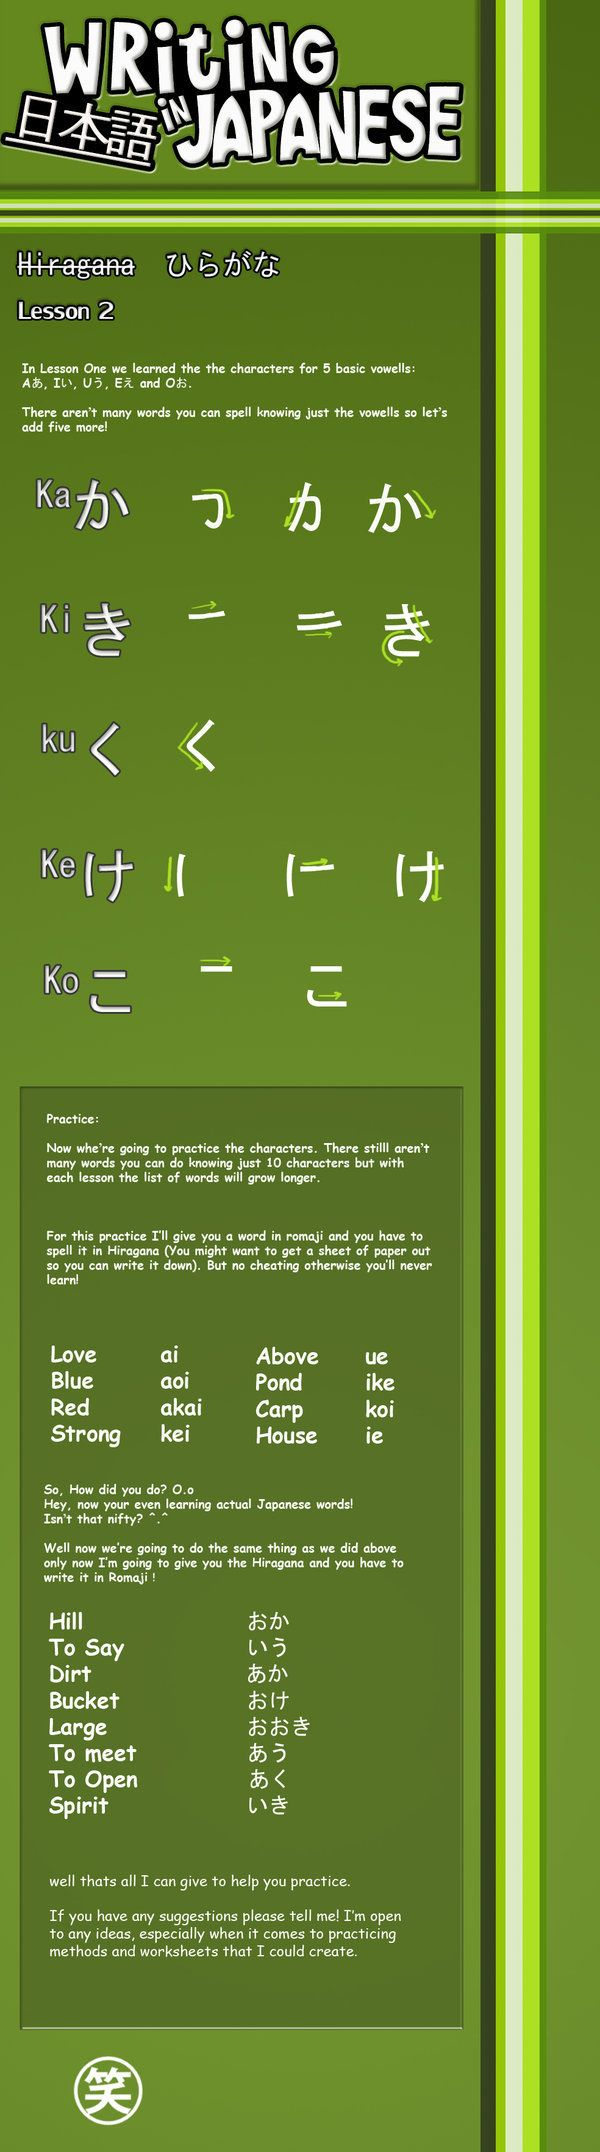 Writing Japanese- Lesson 2 by emm2341